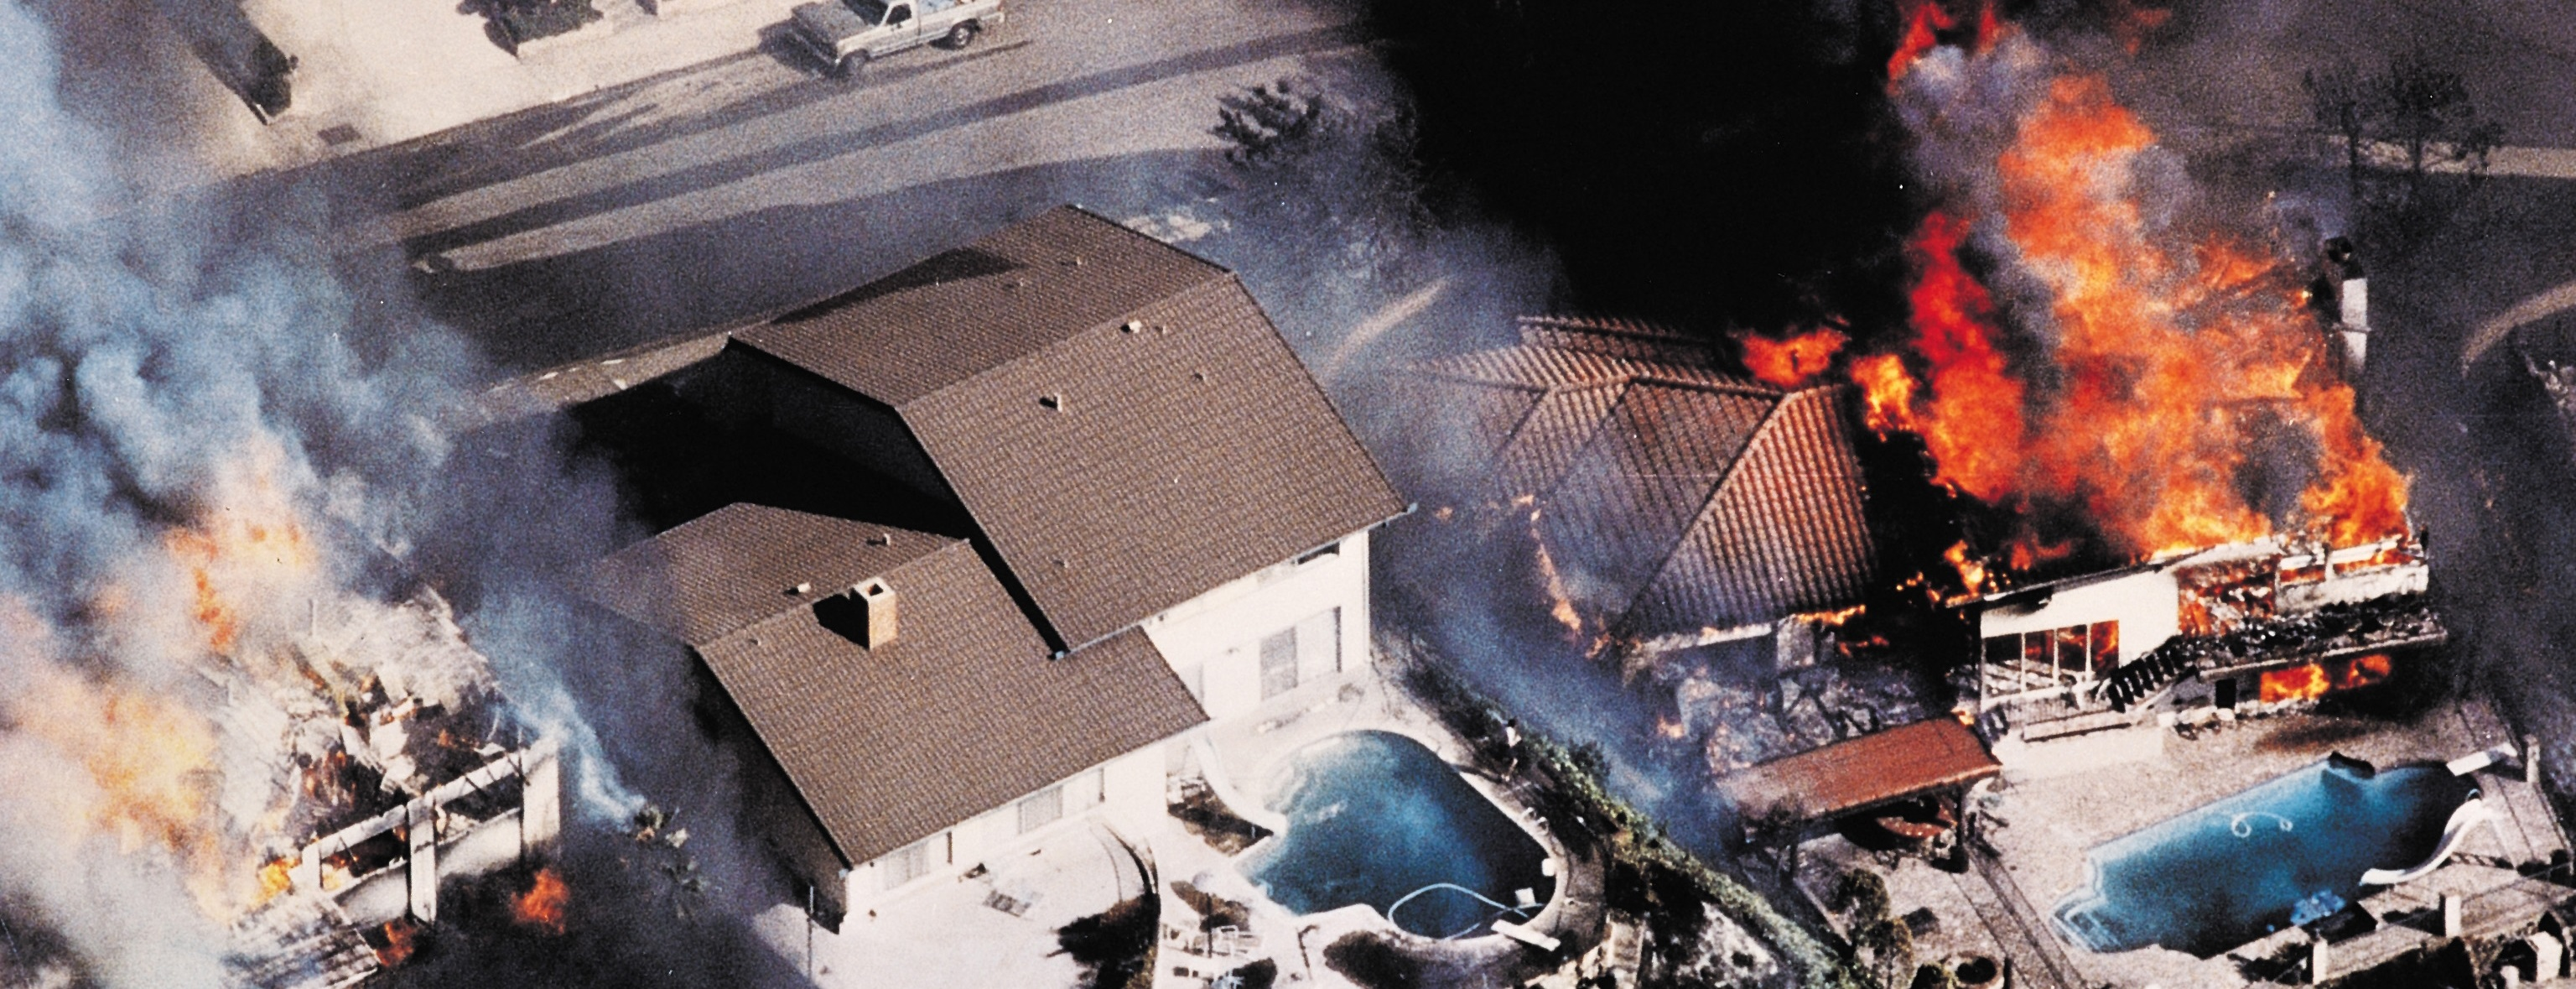 DECRA Stone-Coated Steel: The Best Roofing Material for Fire Protection